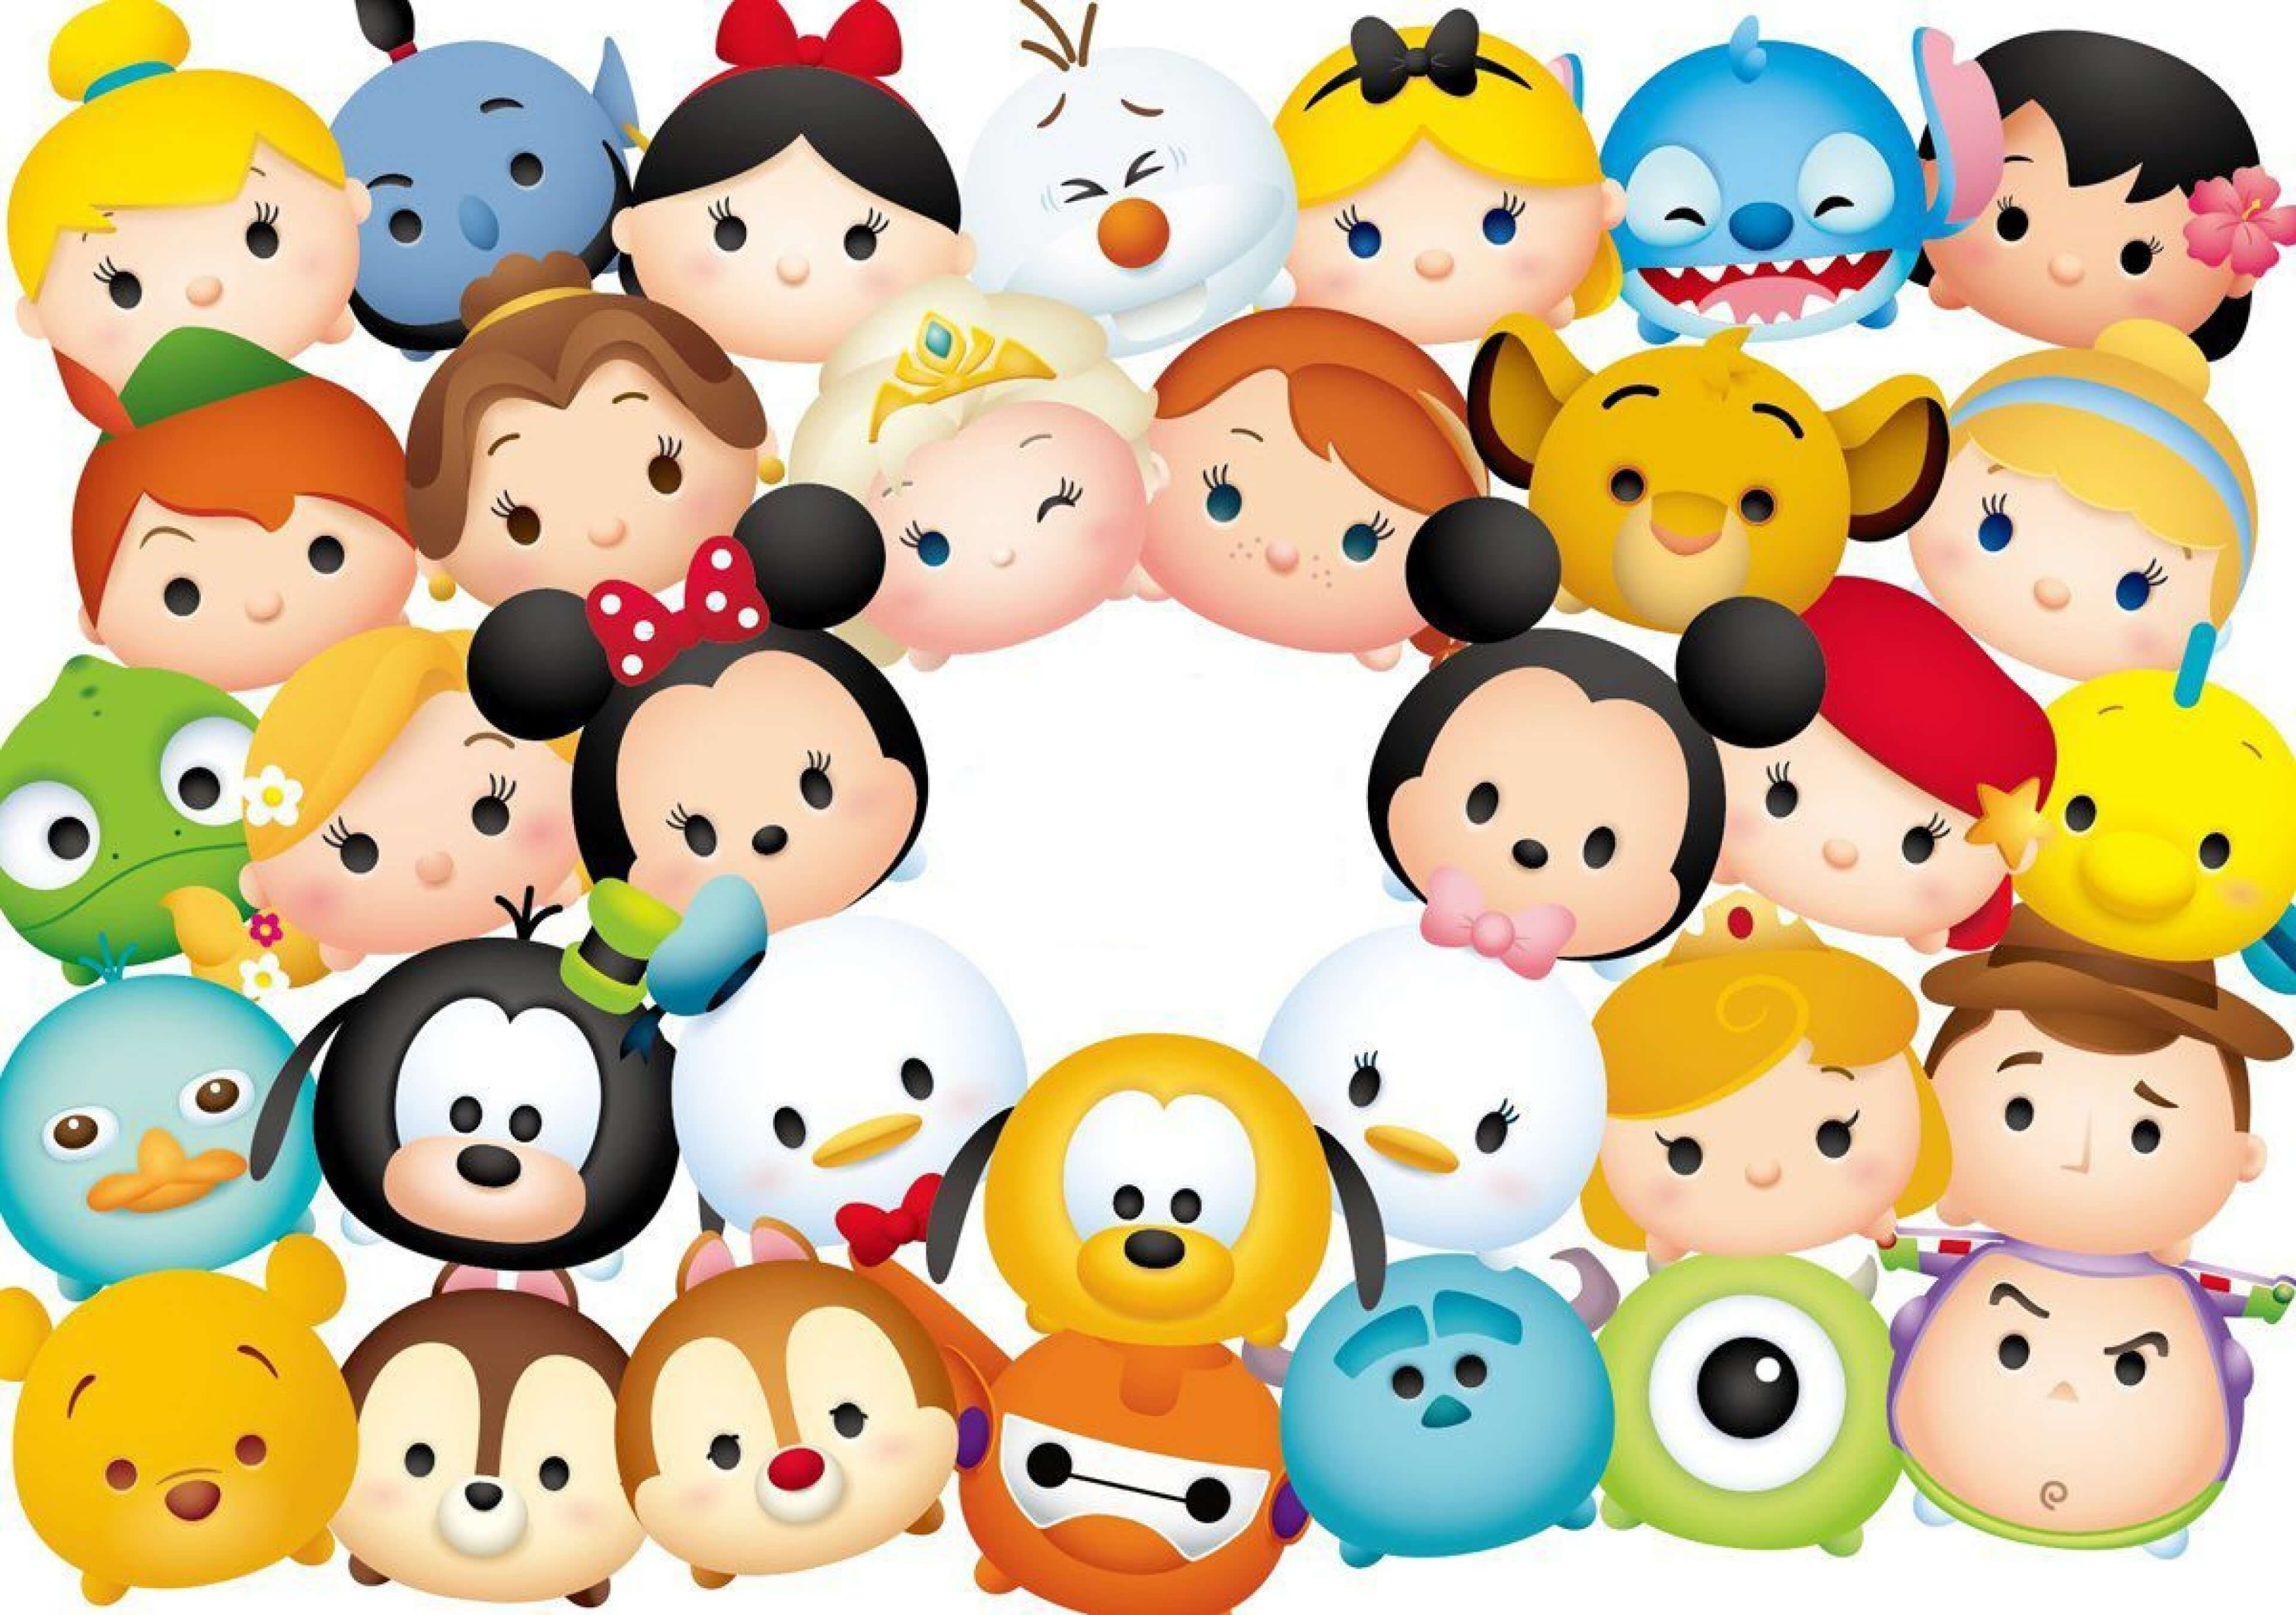 https www wallpaperplex com best tsum tsum wallpaper 4k hd free tsum tsum wallpaper for desktop 4k hd bingkai undangan tsum tsum wallpaper 4k hd